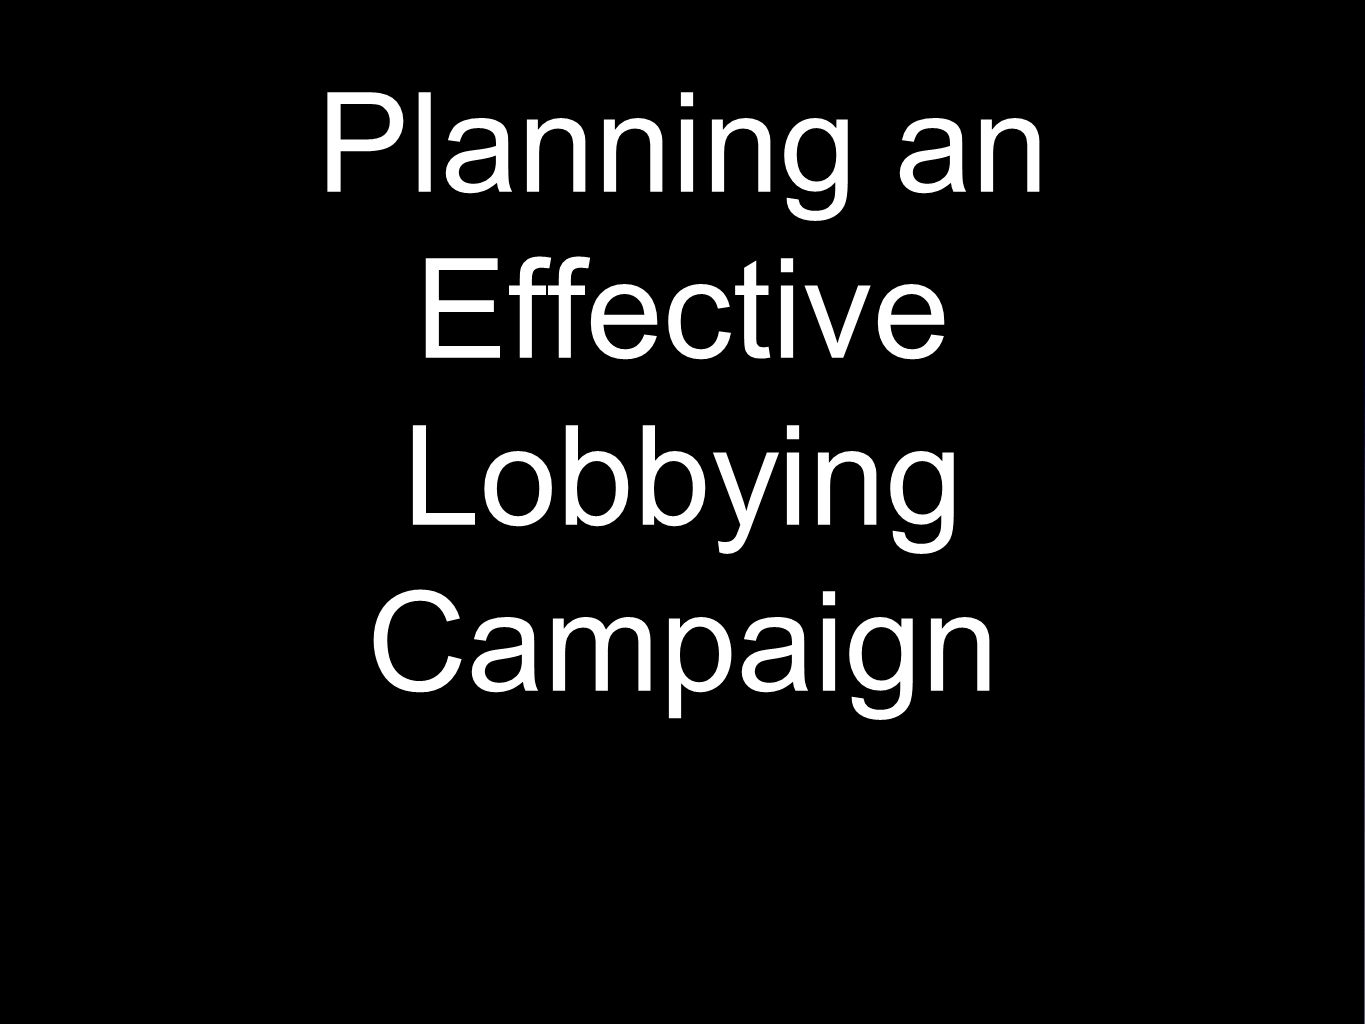 Planning an Effective Lobbying Planning an Effective Lobbying Campaign